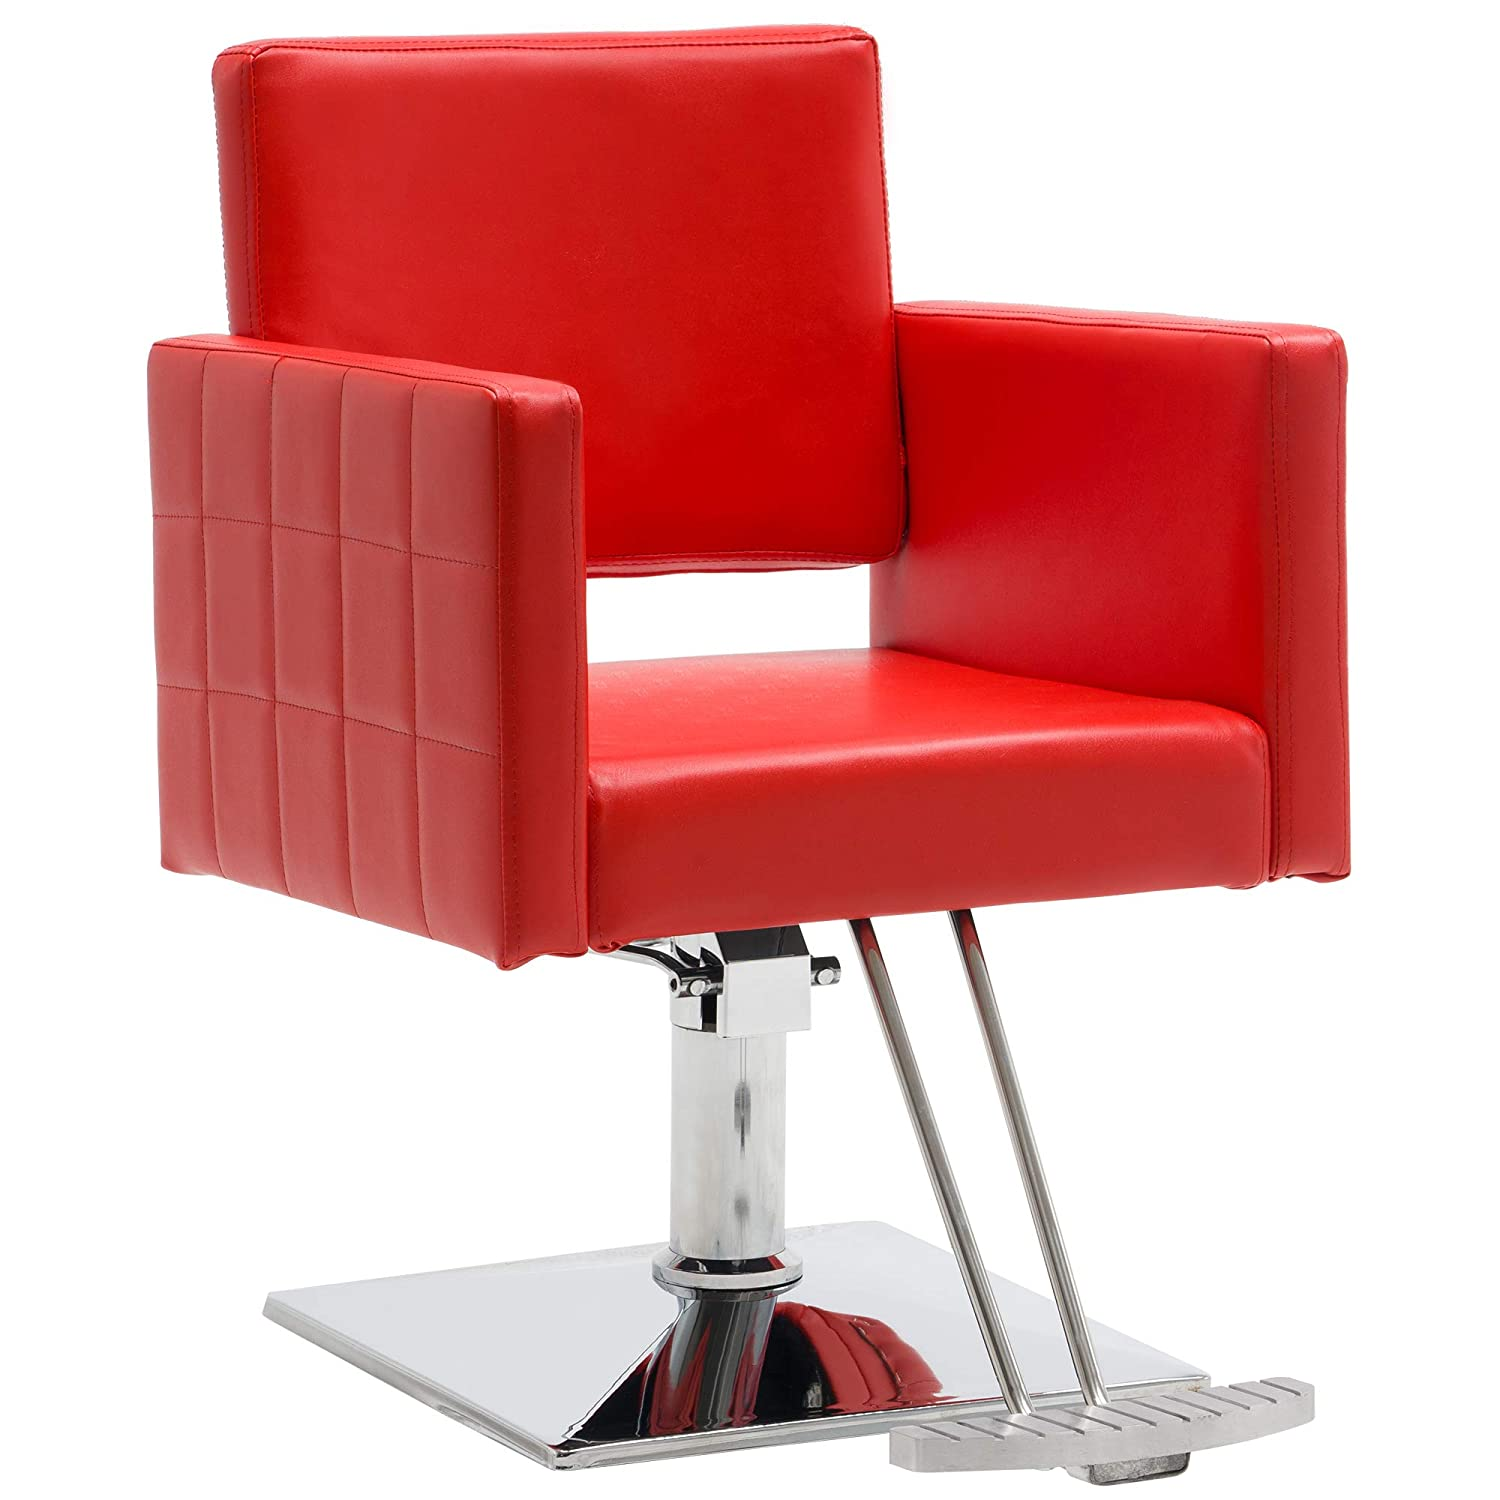 BarberPub Classic Styling Salon Chair for Hair Stylist Hydraulic Barber Chair Beauty Spa Equipment 8821 Red